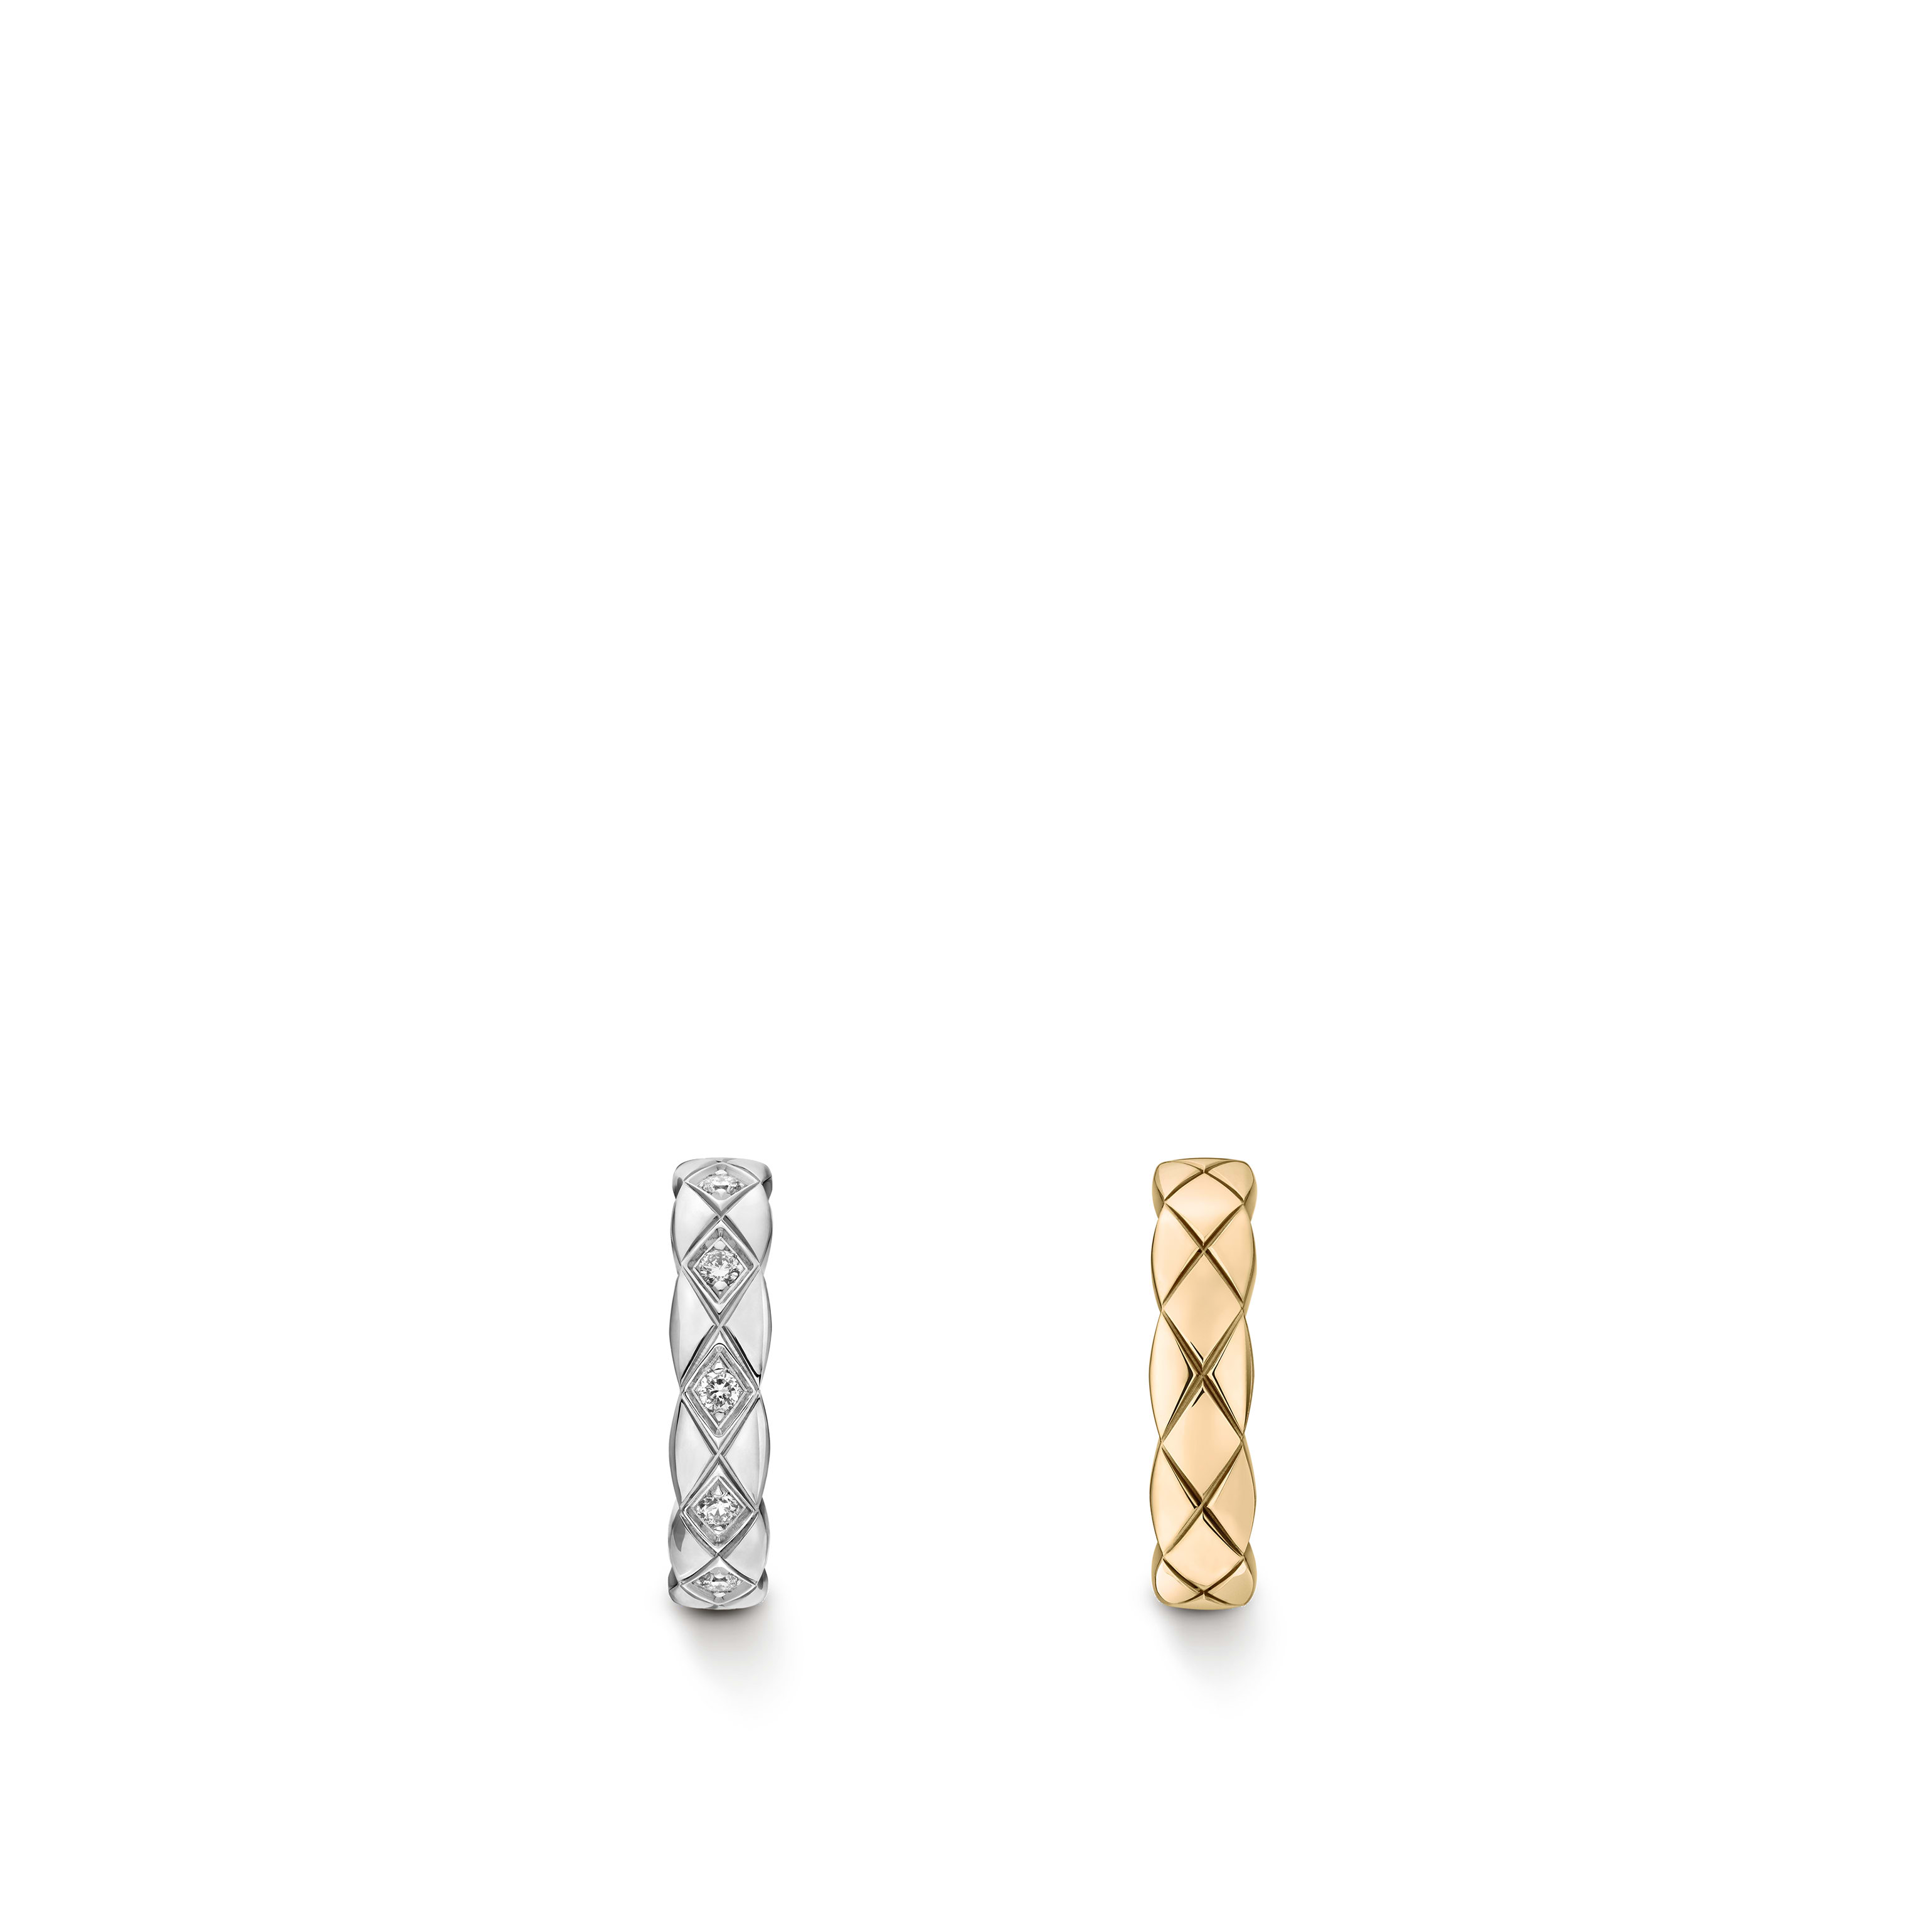 Coco Crush earrings - Quilted motif, 18K white and BEIGE GOLD, diamonds - CHANEL - Default view - see standard sized version